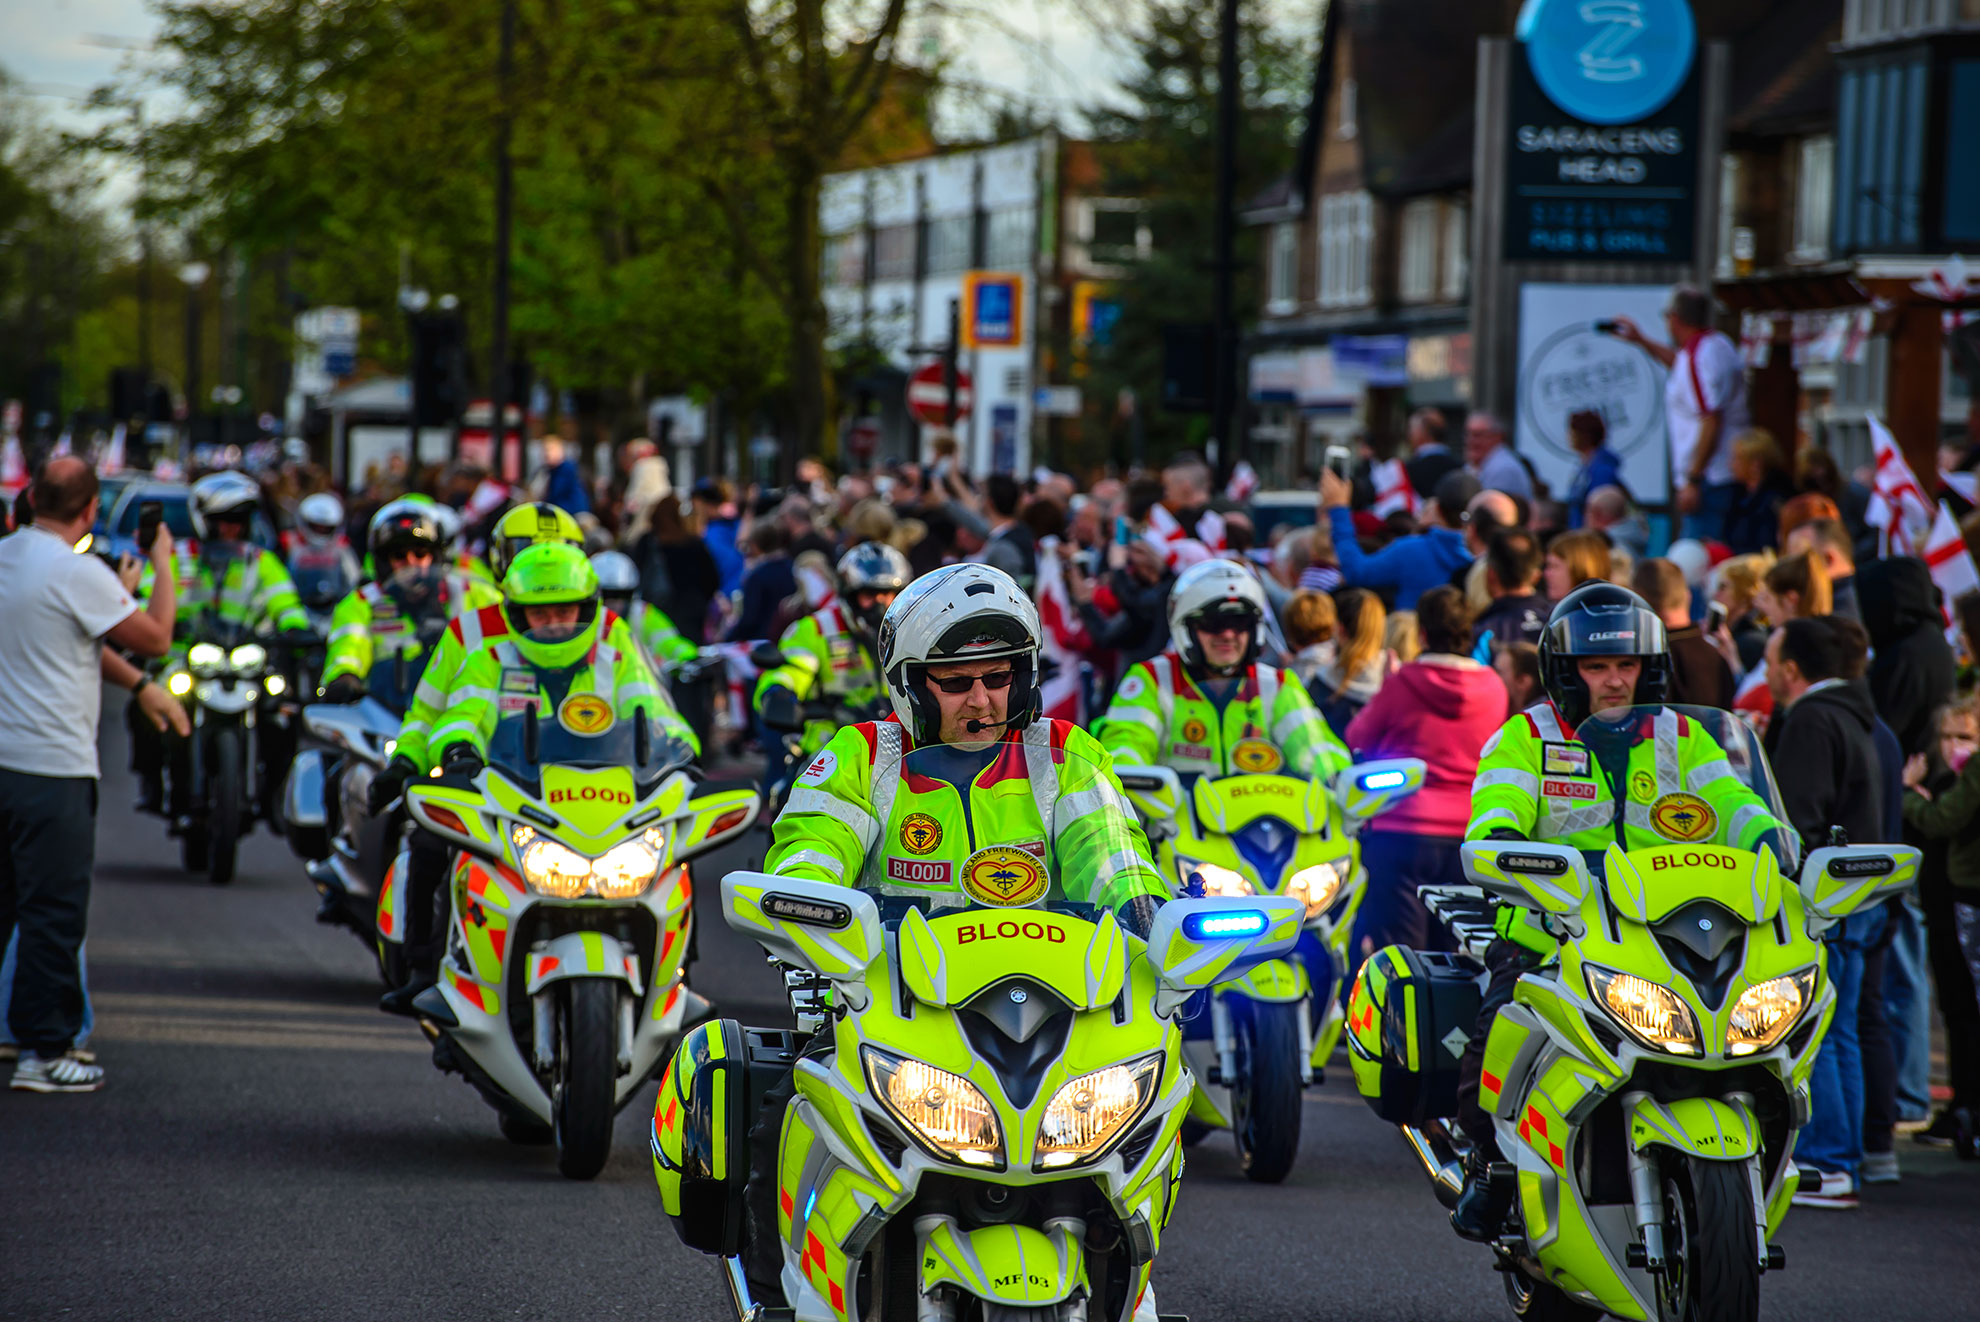 blood bikers volunteers